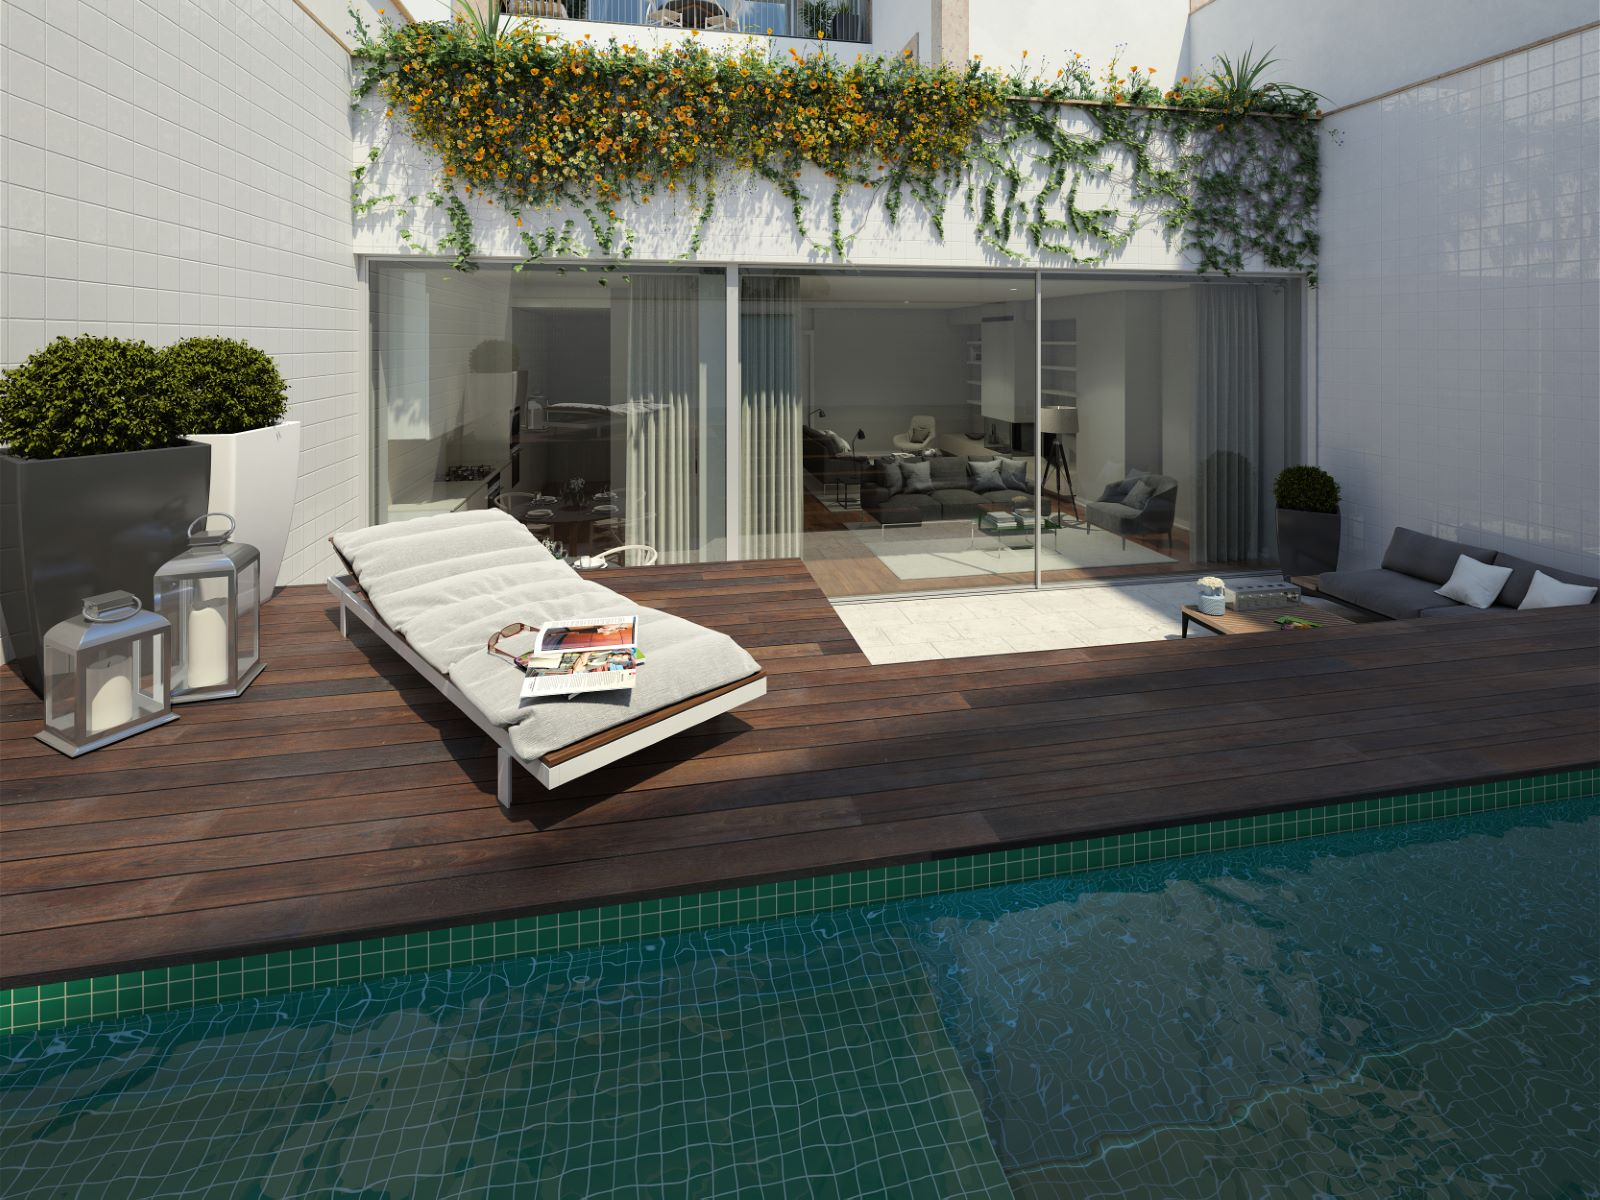 3 BEDROOM APARTMENT WITH TERRACE AND POOL IN CHIADO, LISBON